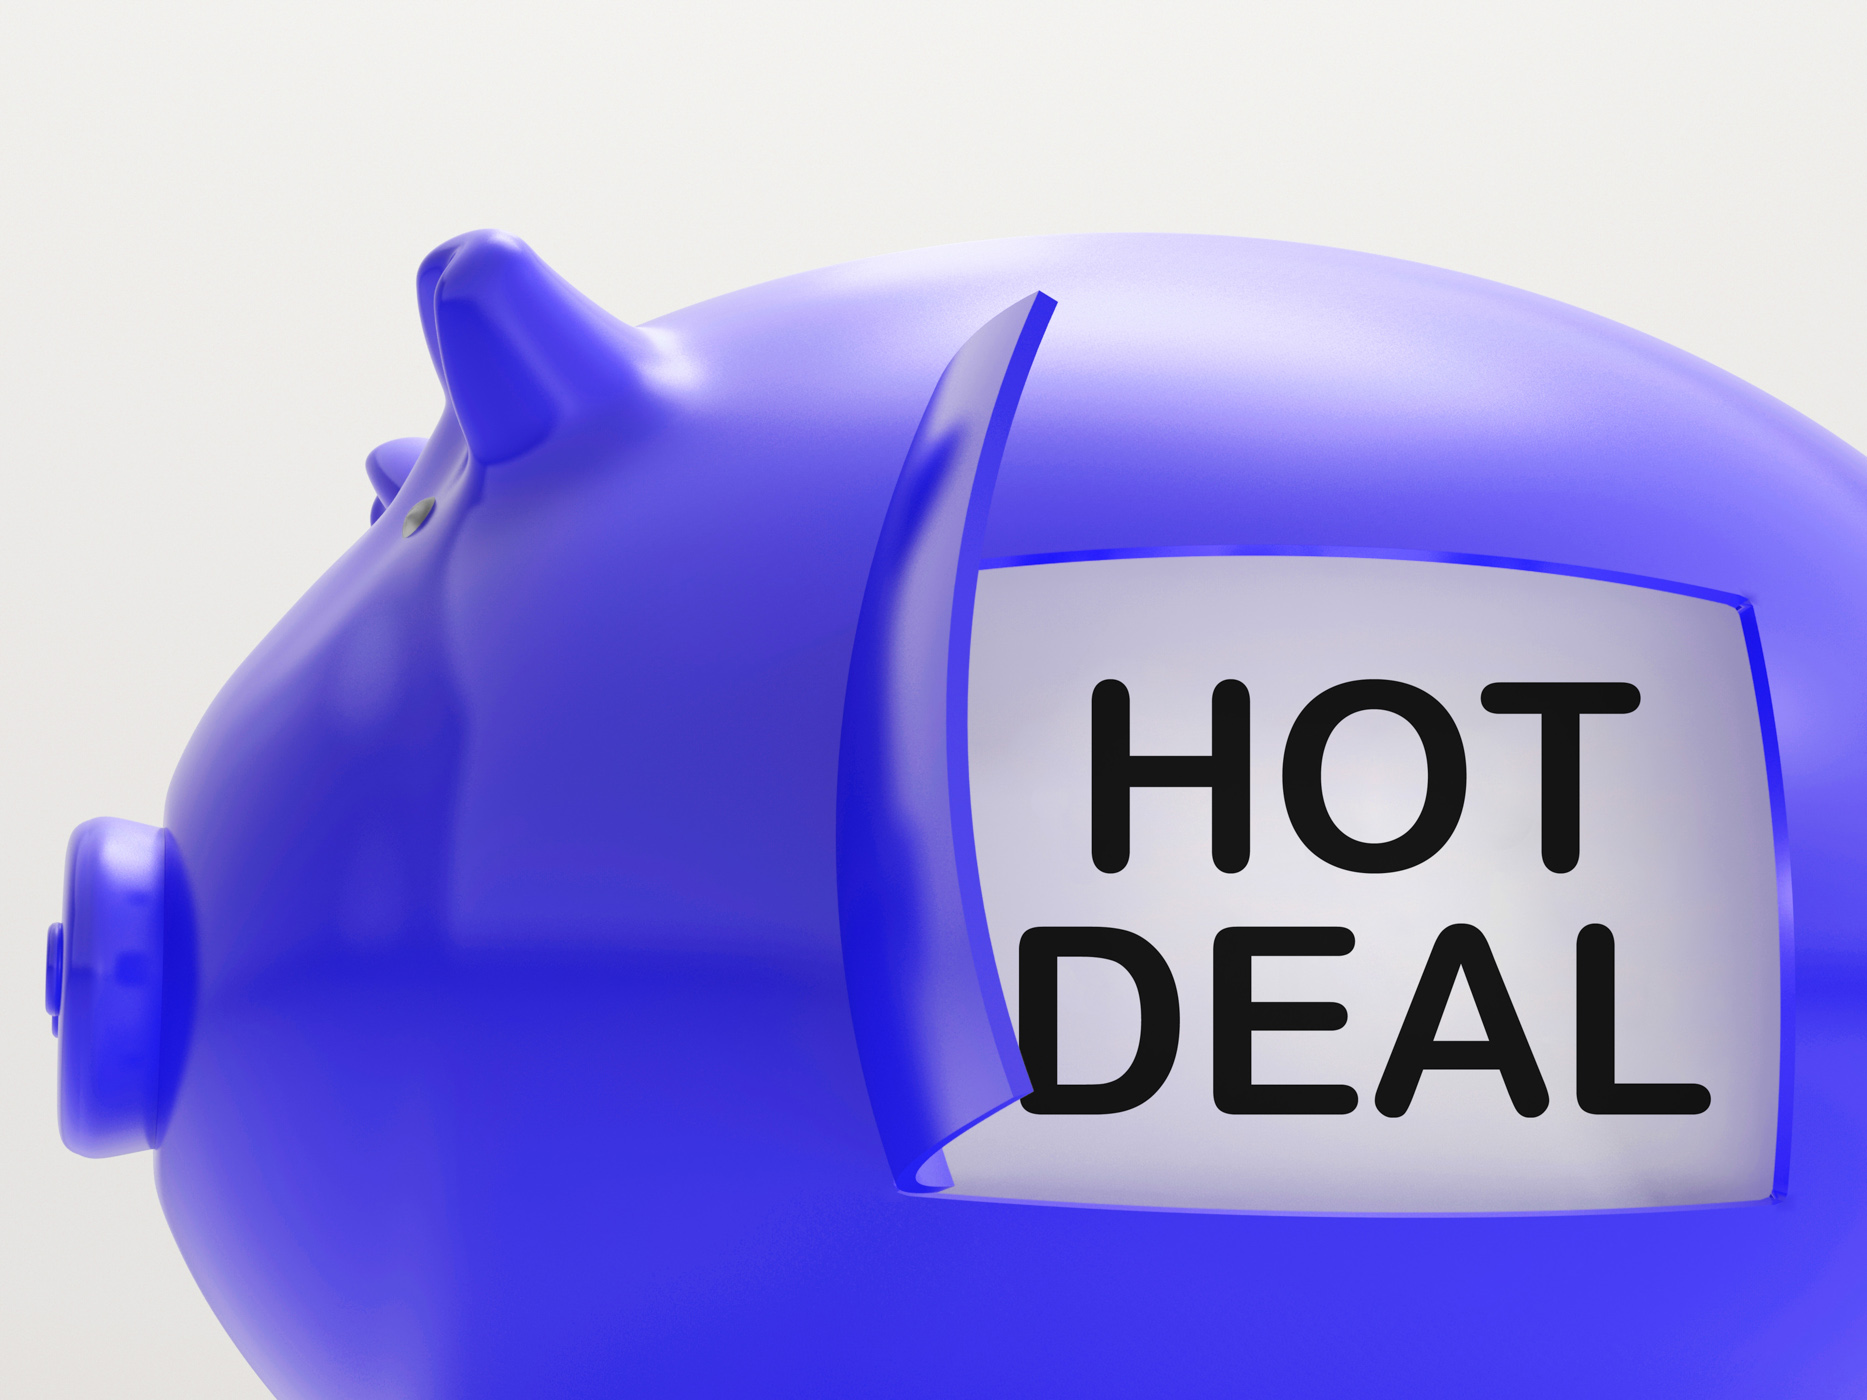 Hot deal piggy bank means best price and quality photo